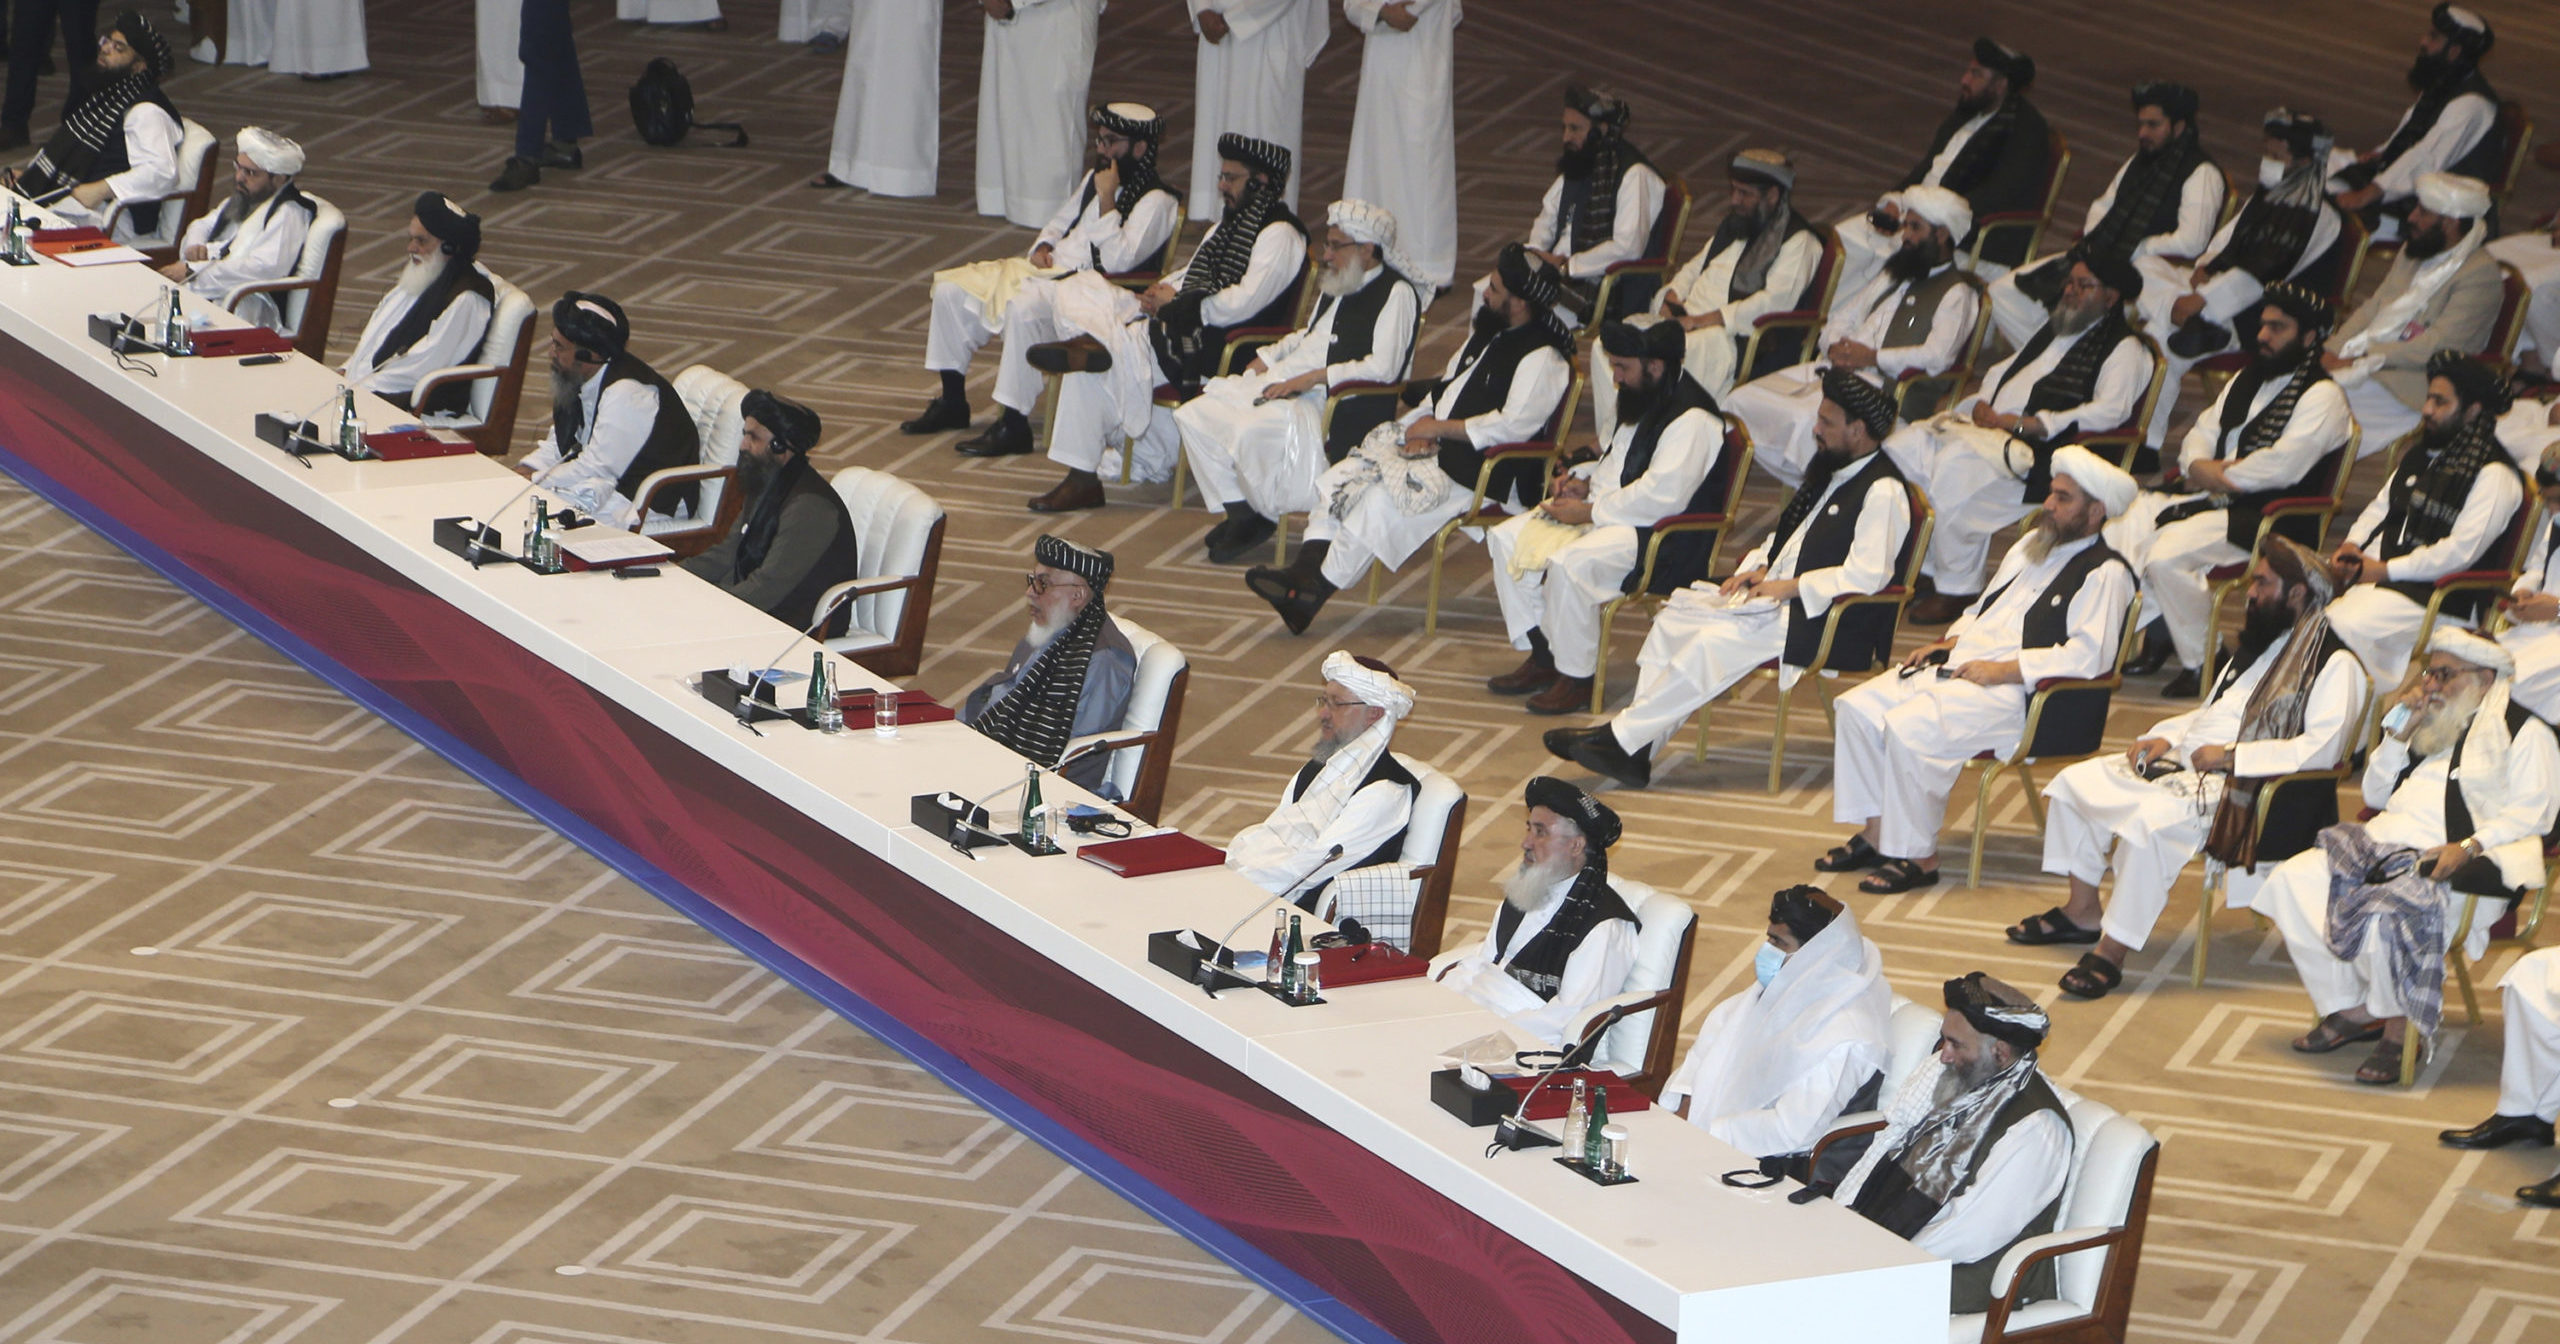 Taliban negotiators attend the opening session of the peace talks between the Afghan government and the Taliban in Doha, Qatar, on Sept. 12, 2020.